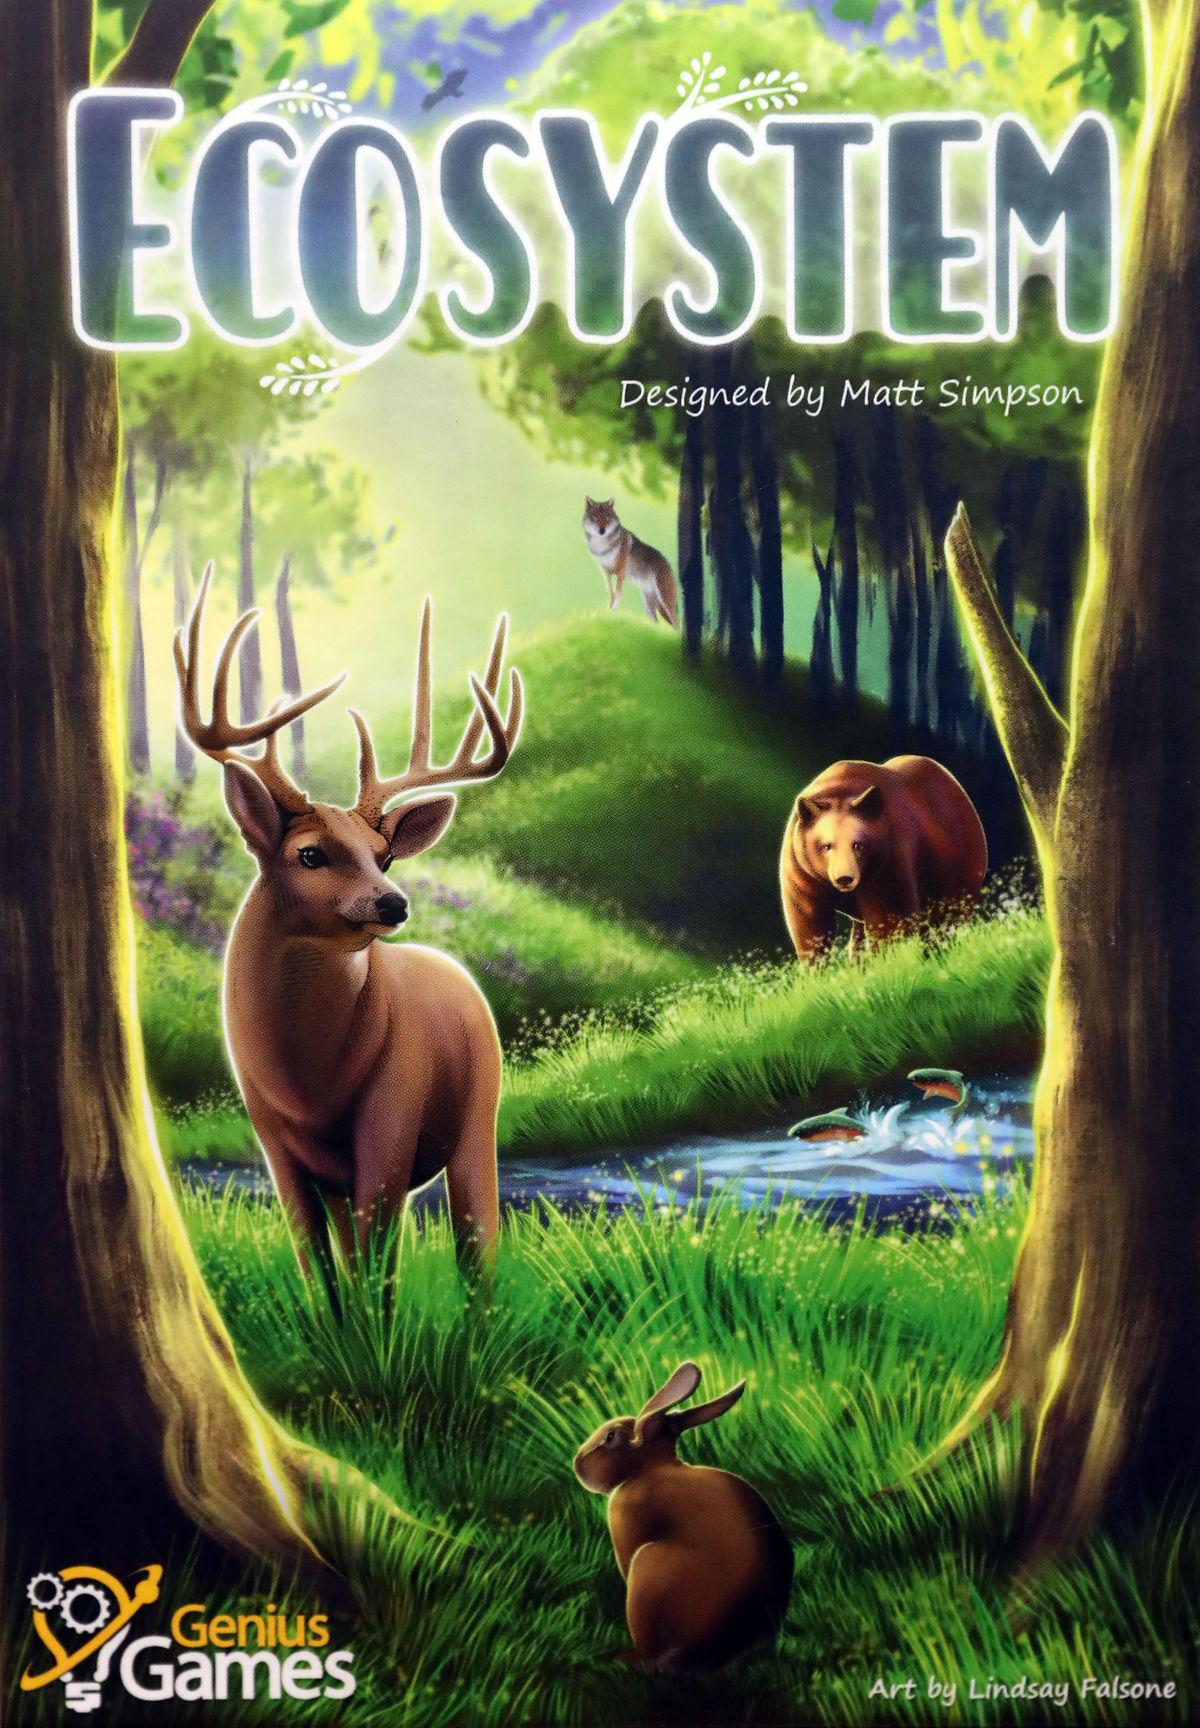 Time to play: Party, tournament celebrate release of 'Ecosystem' by GJ game designer, artist